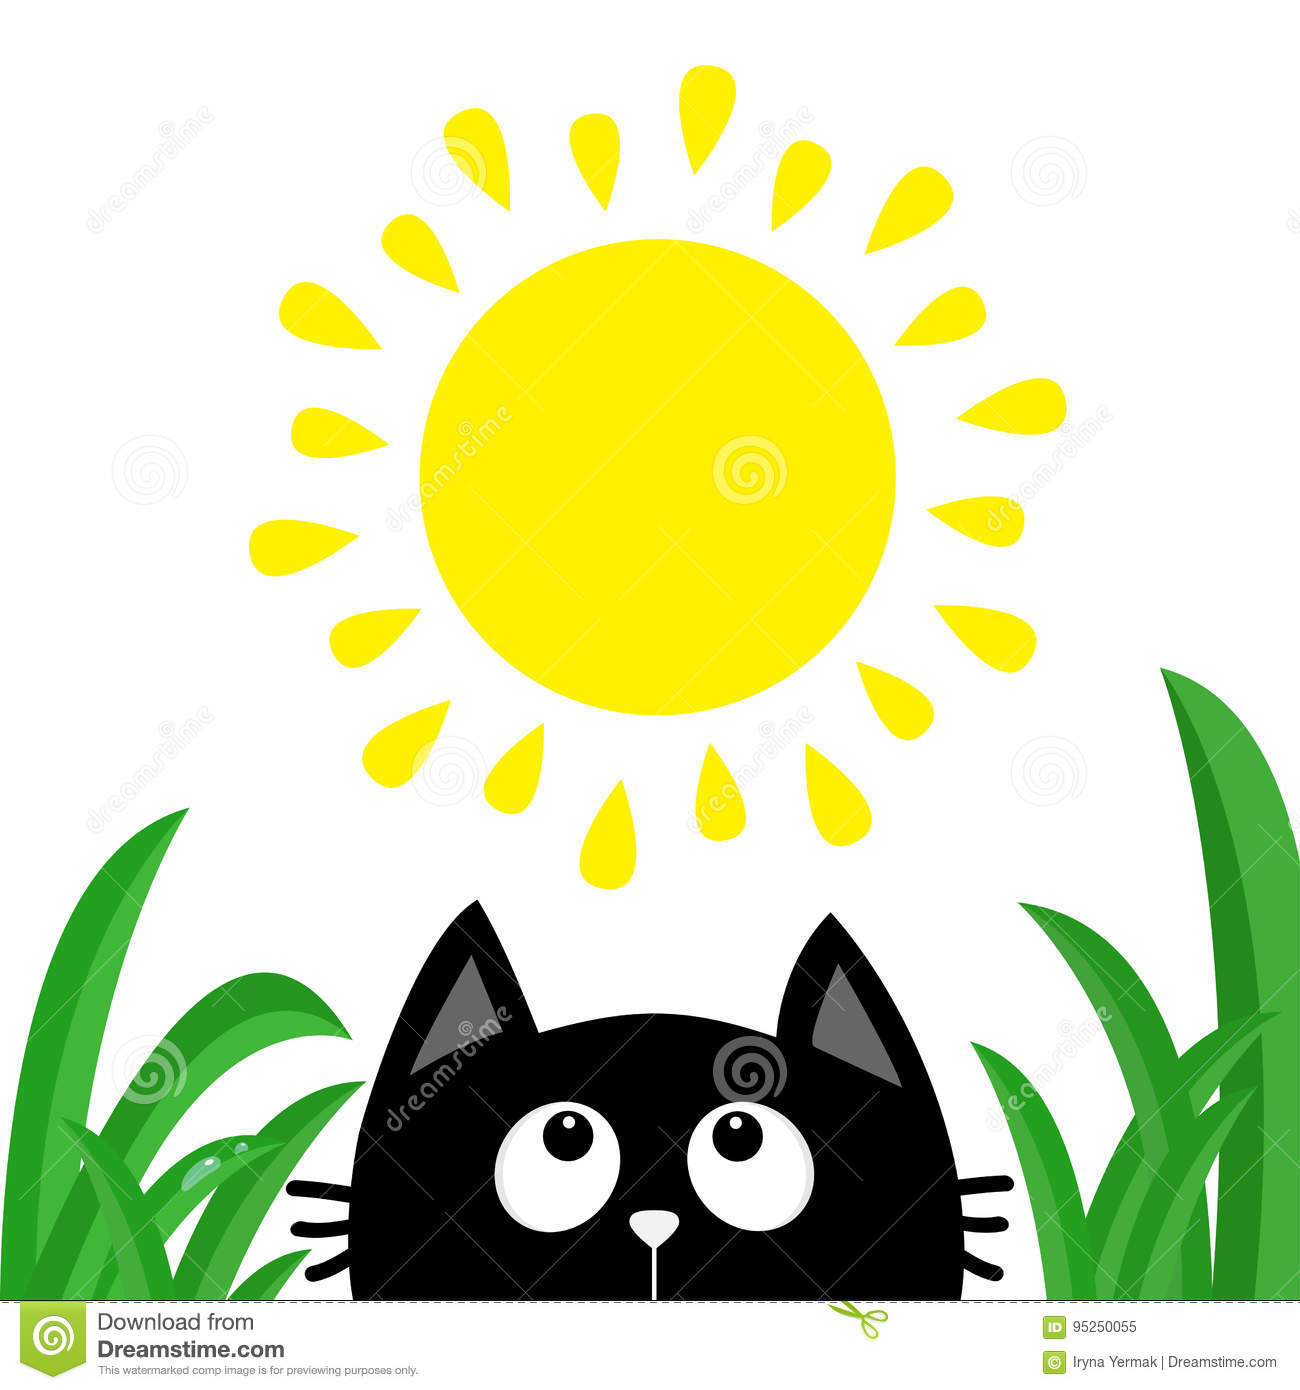 black cat face head silhouette looking up to sun shining green rh dreamstime com Grass Clip Art Grass Silhouette Vector Free